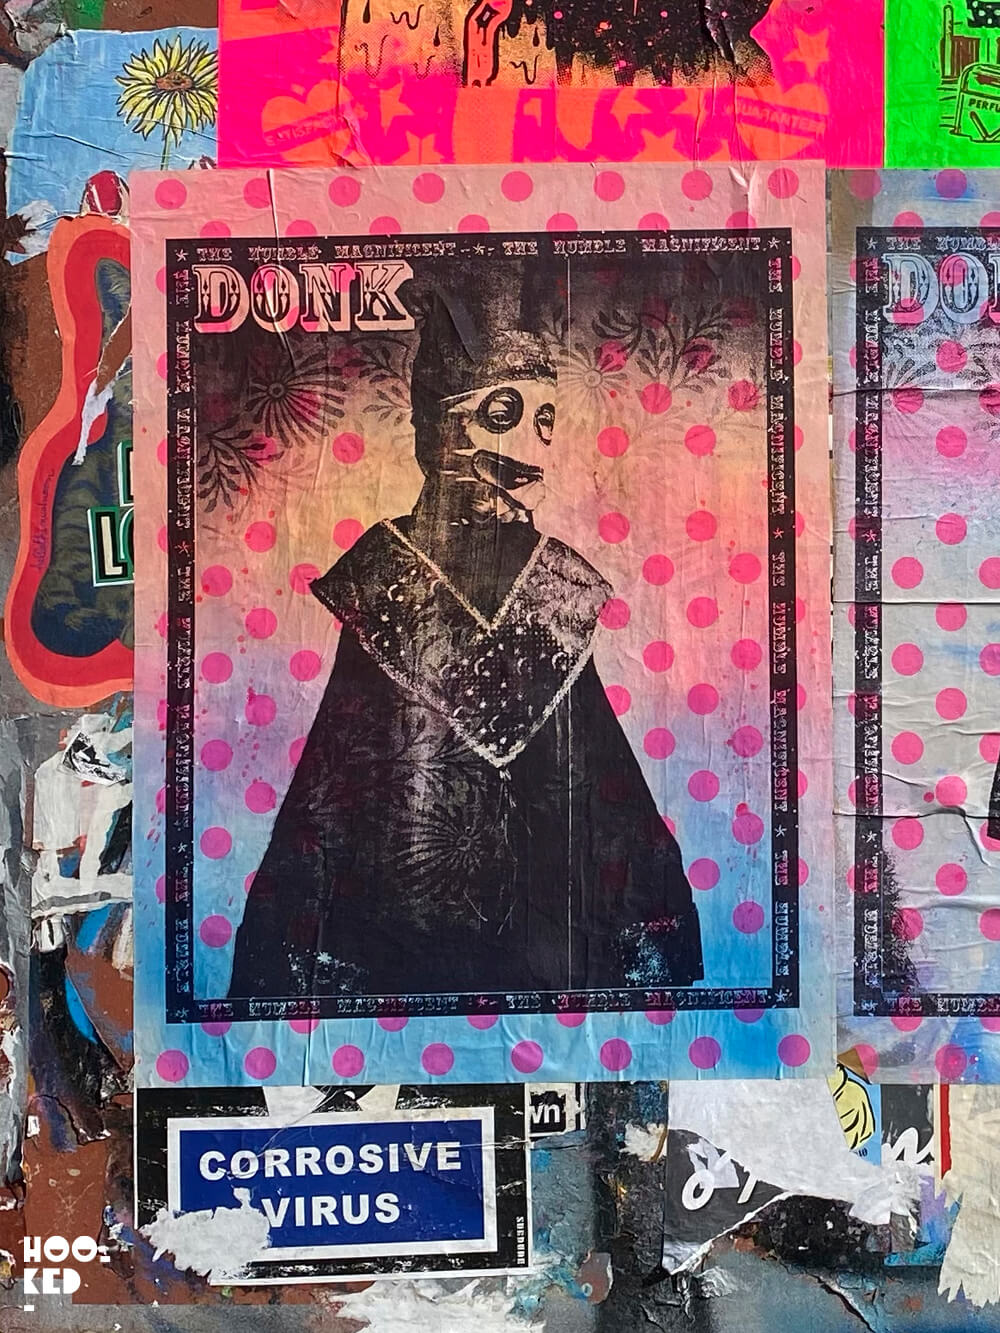 London Street Art in Shoreditch with Artists Donk, Zombiesqueegee and Fiftysevendesign